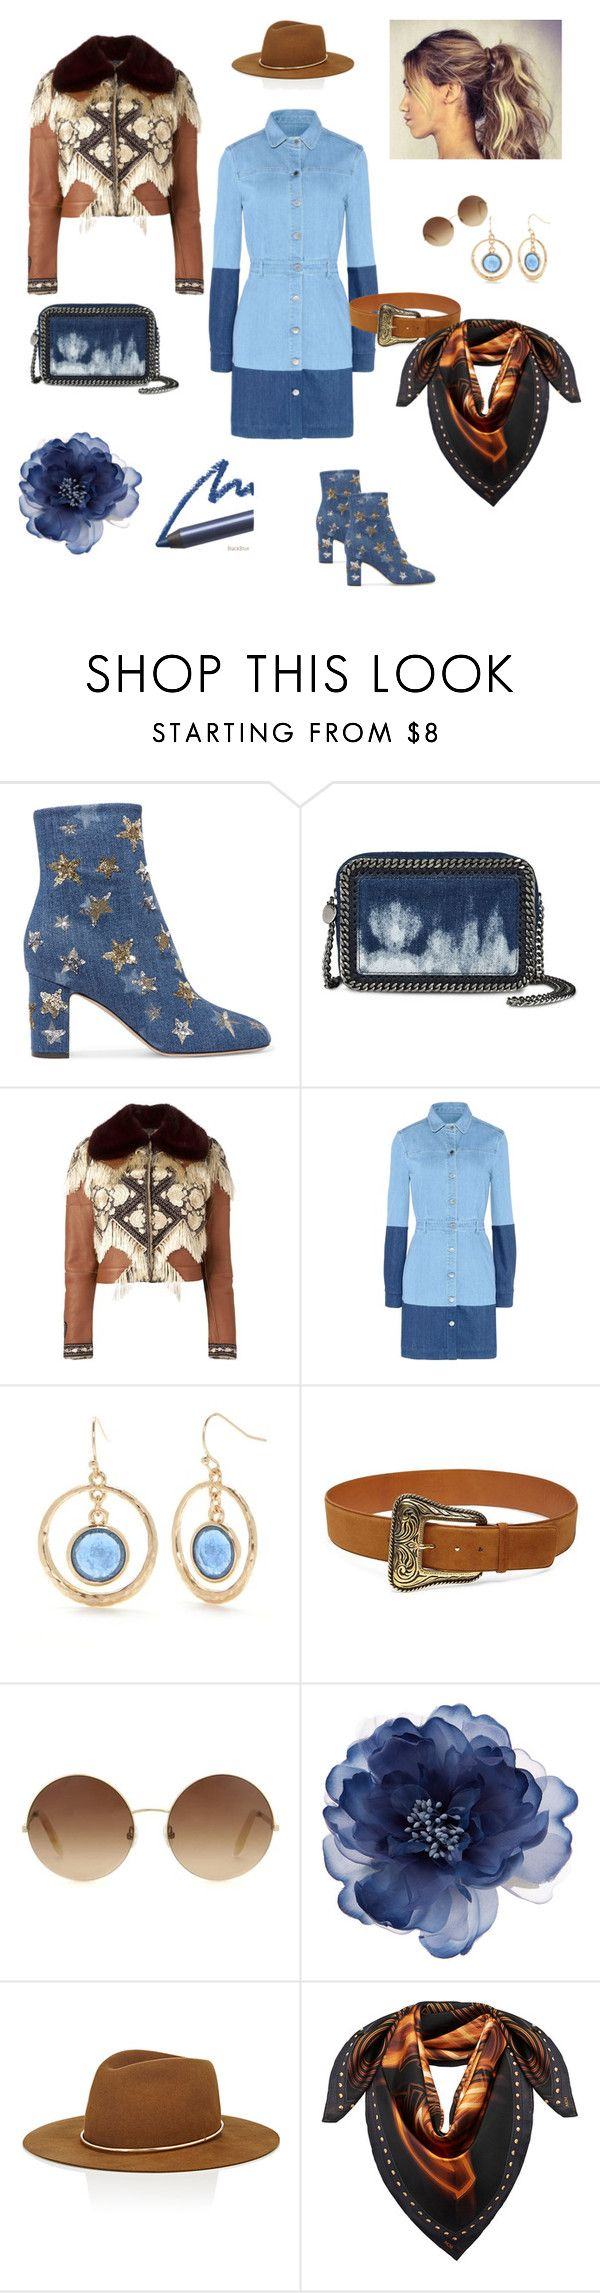 """Re-invented western"" by goldencat ❤ liked on Polyvore featuring Valentino, STELLA McCARTNEY, Alexander McQueen, New Directions, Yves Saint Laurent, Victoria Beckham, Accessorize, Janessa Leone and MCM"